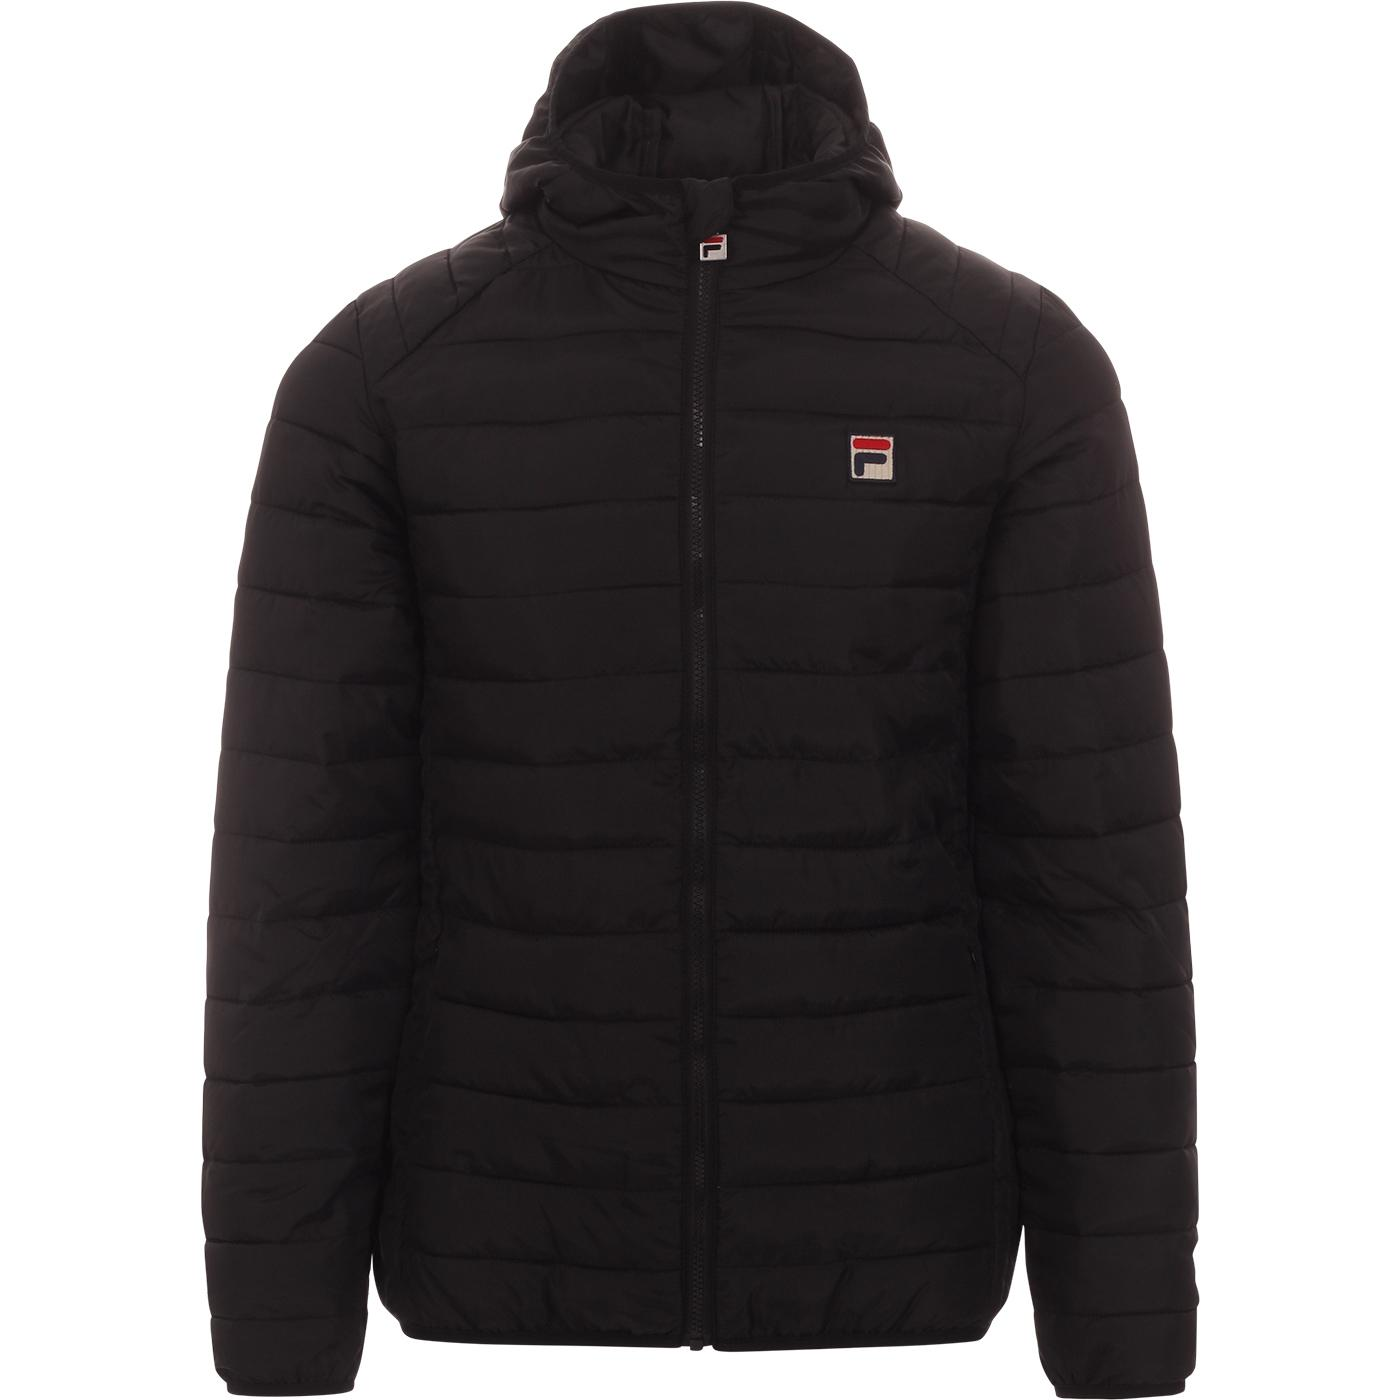 Pavo FILA VINTAGE Retro Quilted Ski Jacket (Black)